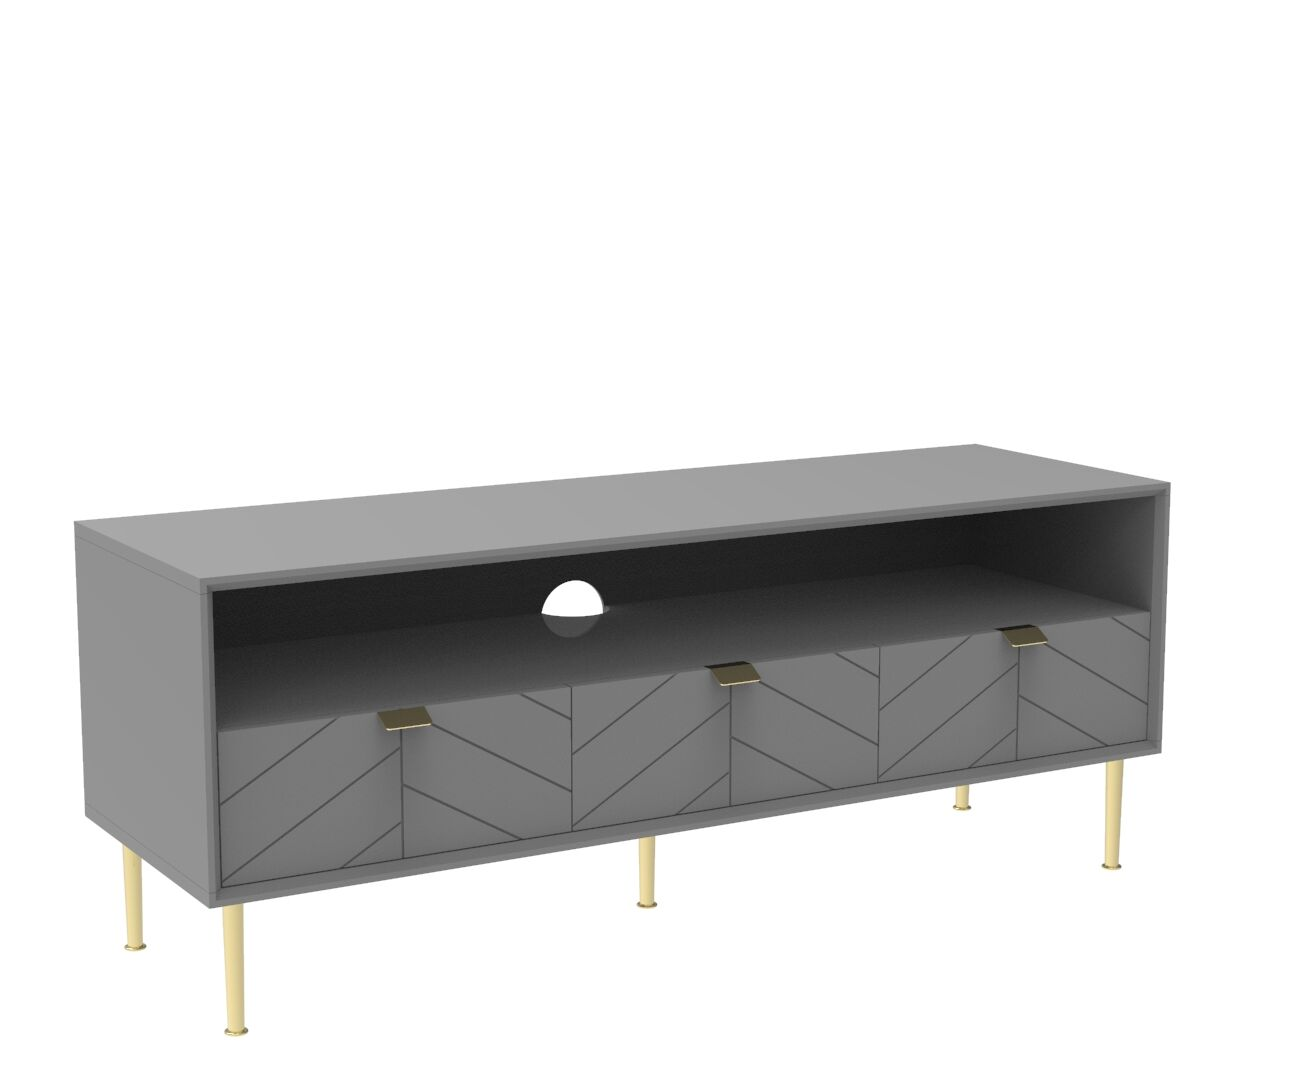 Chevron-patterned Adele TV Unit in Mist Grey and Brass